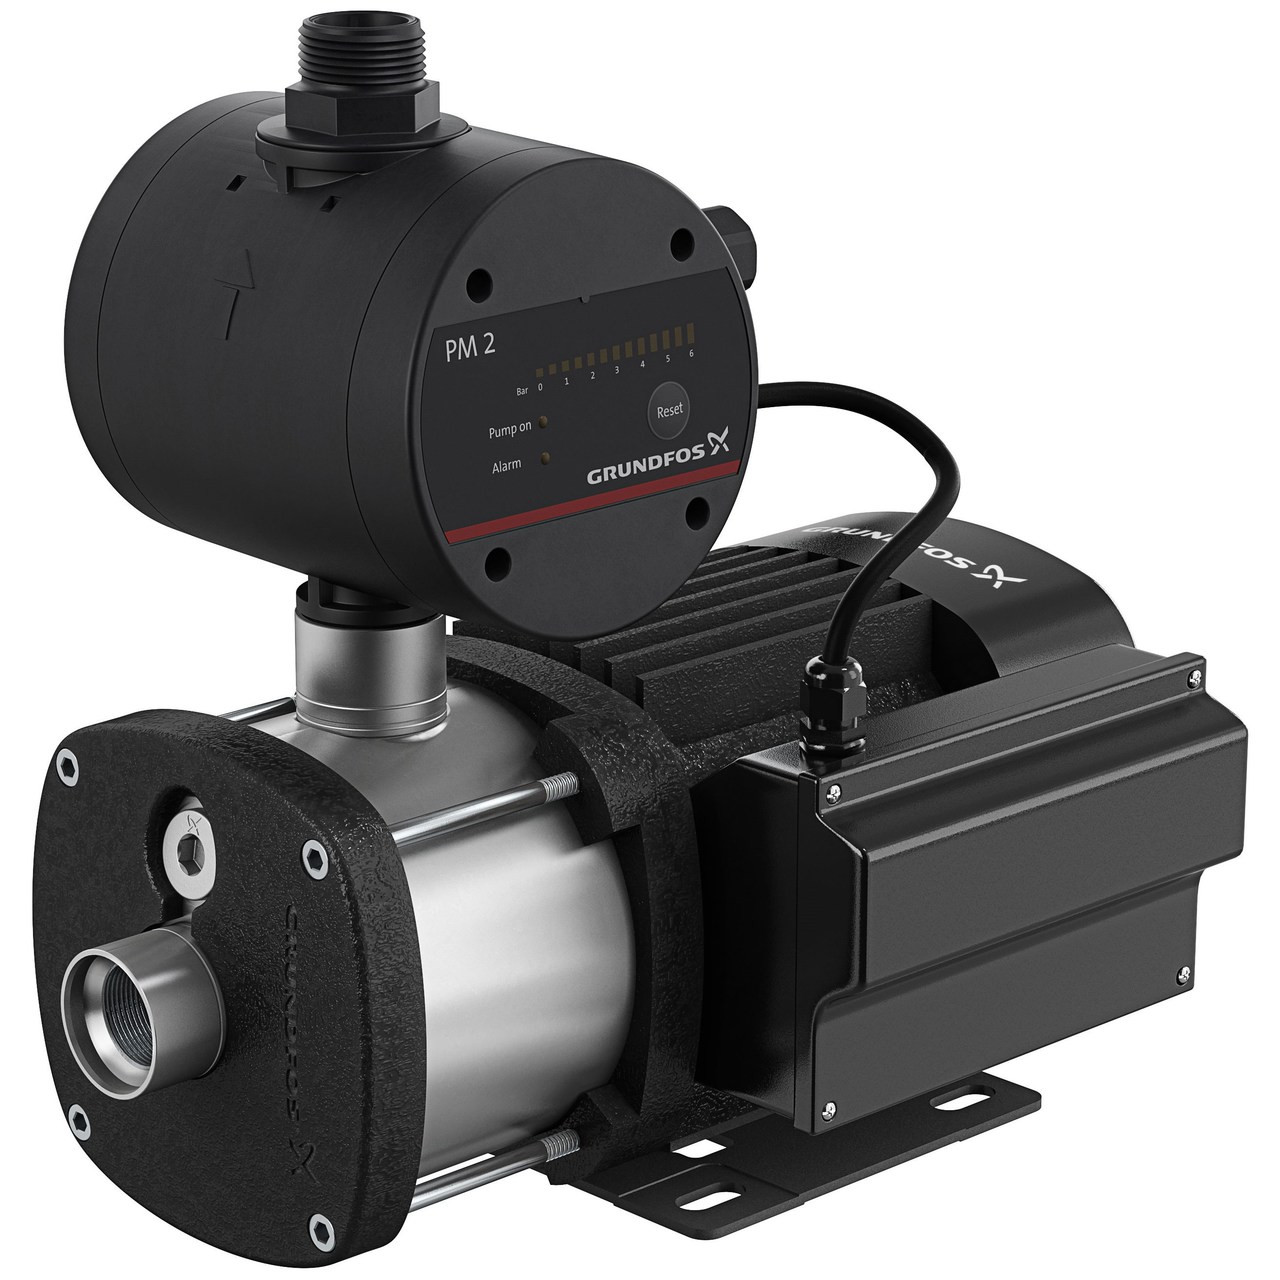 Grundfos CMB-SP 3-28 Single Phase Automatic Pressure Pump, PM2 Controller with stainless steel pump end and run-dry protection.   40 L/Min @ 225 kPa.